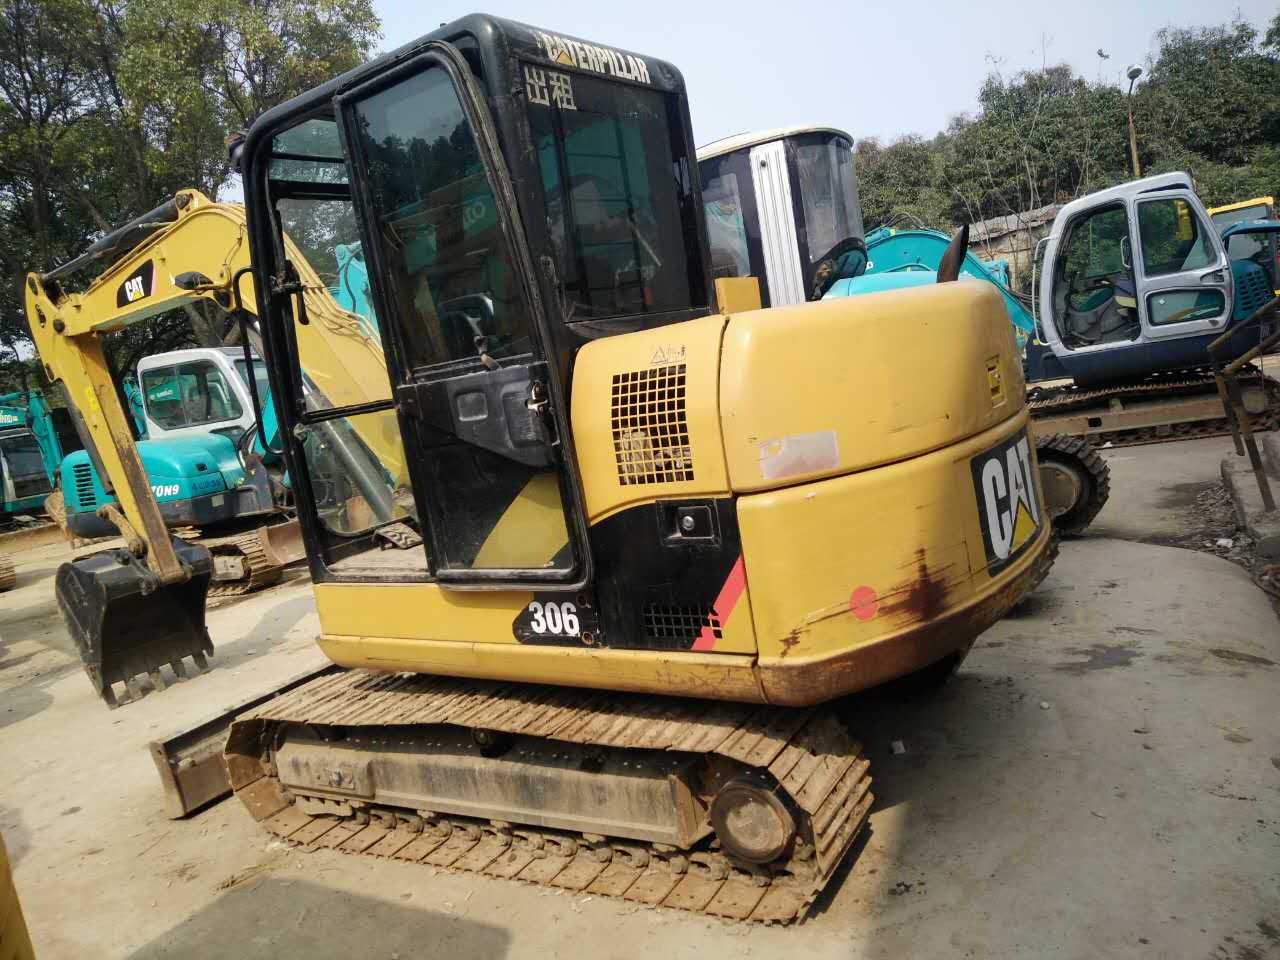 Used Caterpillar 306 Excavator